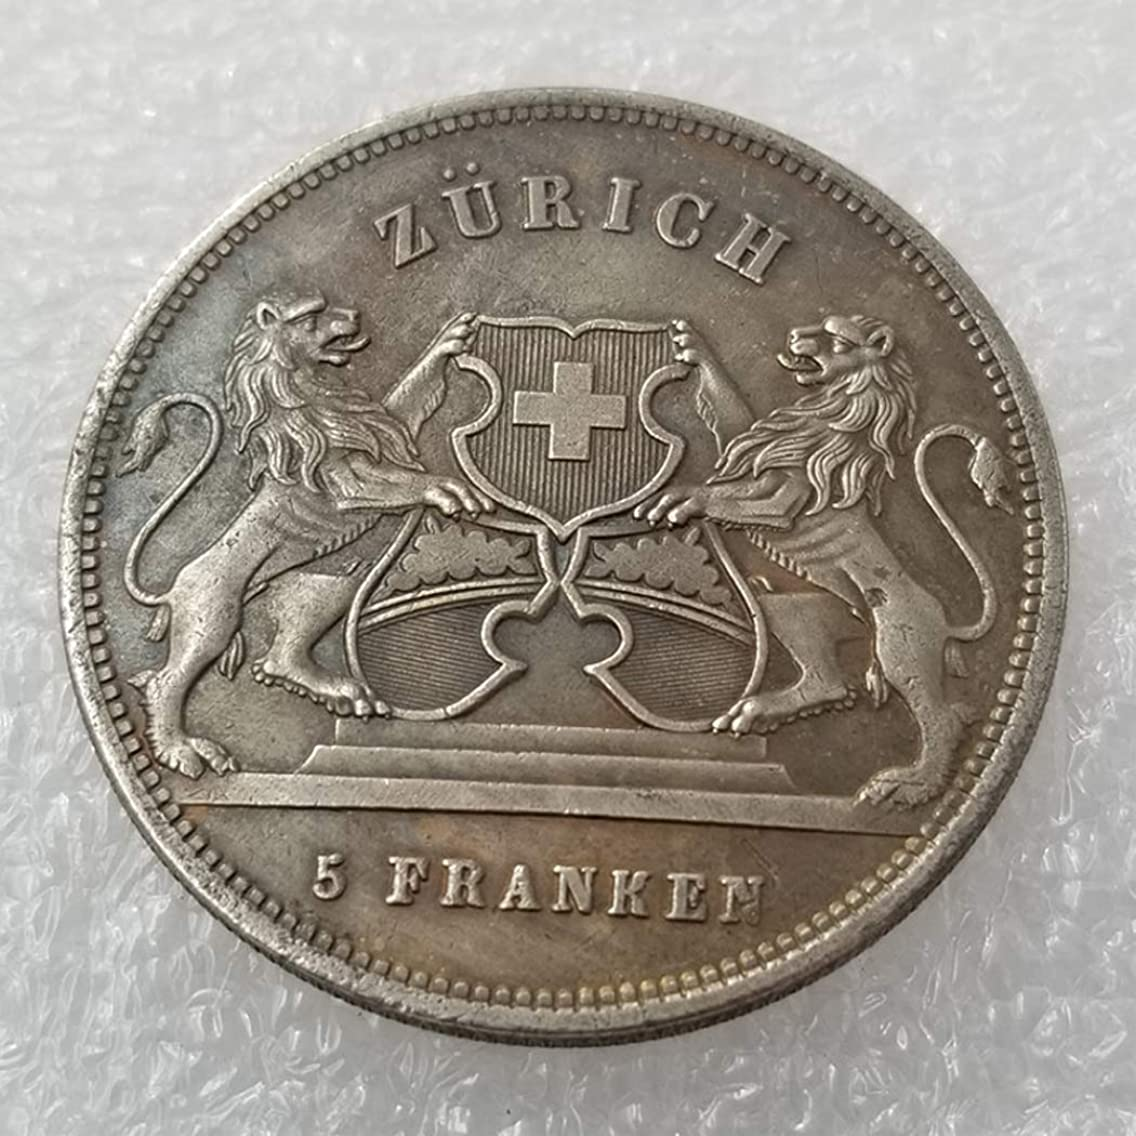 GreatSSCoin 1859 Swiss Franc Old Coins - 5 Francs Old Coin-Brilliant Uncirculated Commemorative Coin-Great Switzerland Coins - Discover History of Coins Great Uncirculated Coin